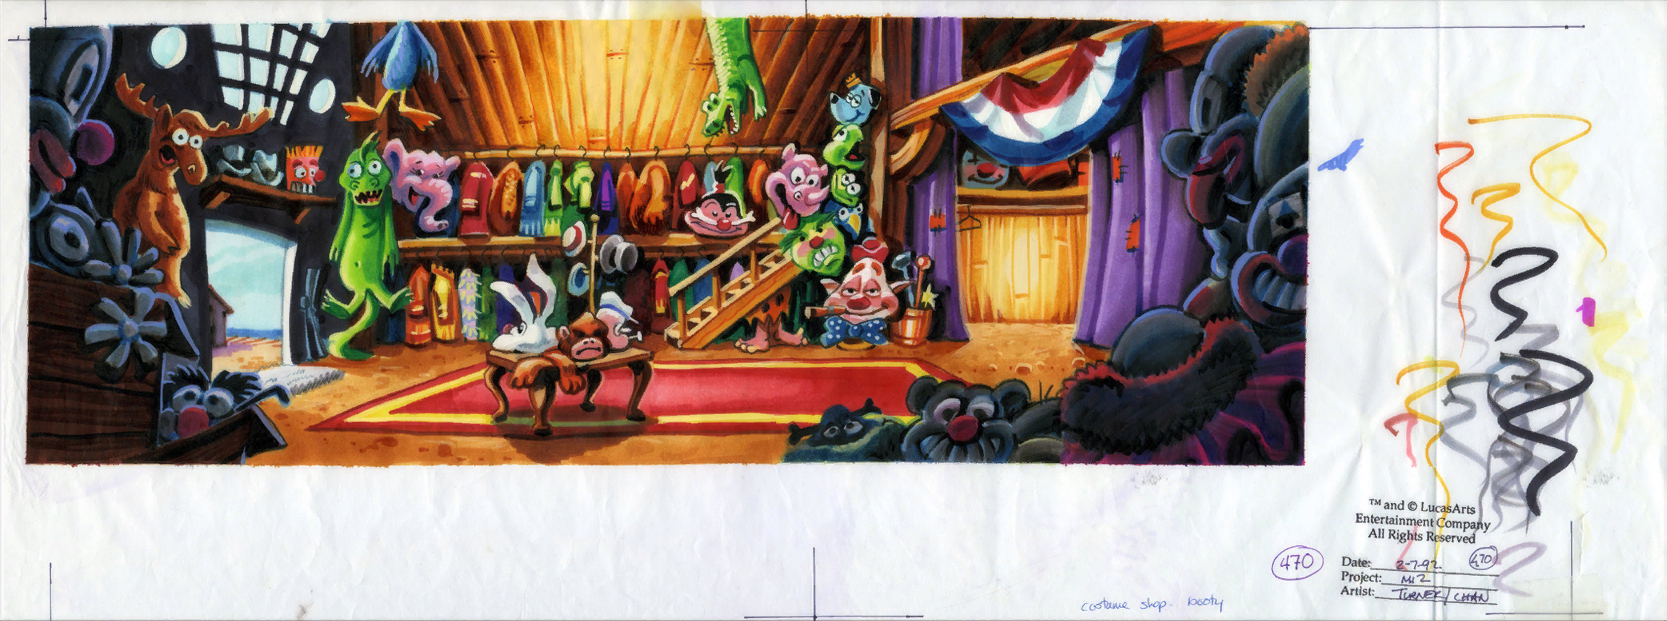 Monkey island 2 lechuck s revenge concept art the international - Original Background Drawing For The Booty Island Costume Shop Sam And Max Haven T